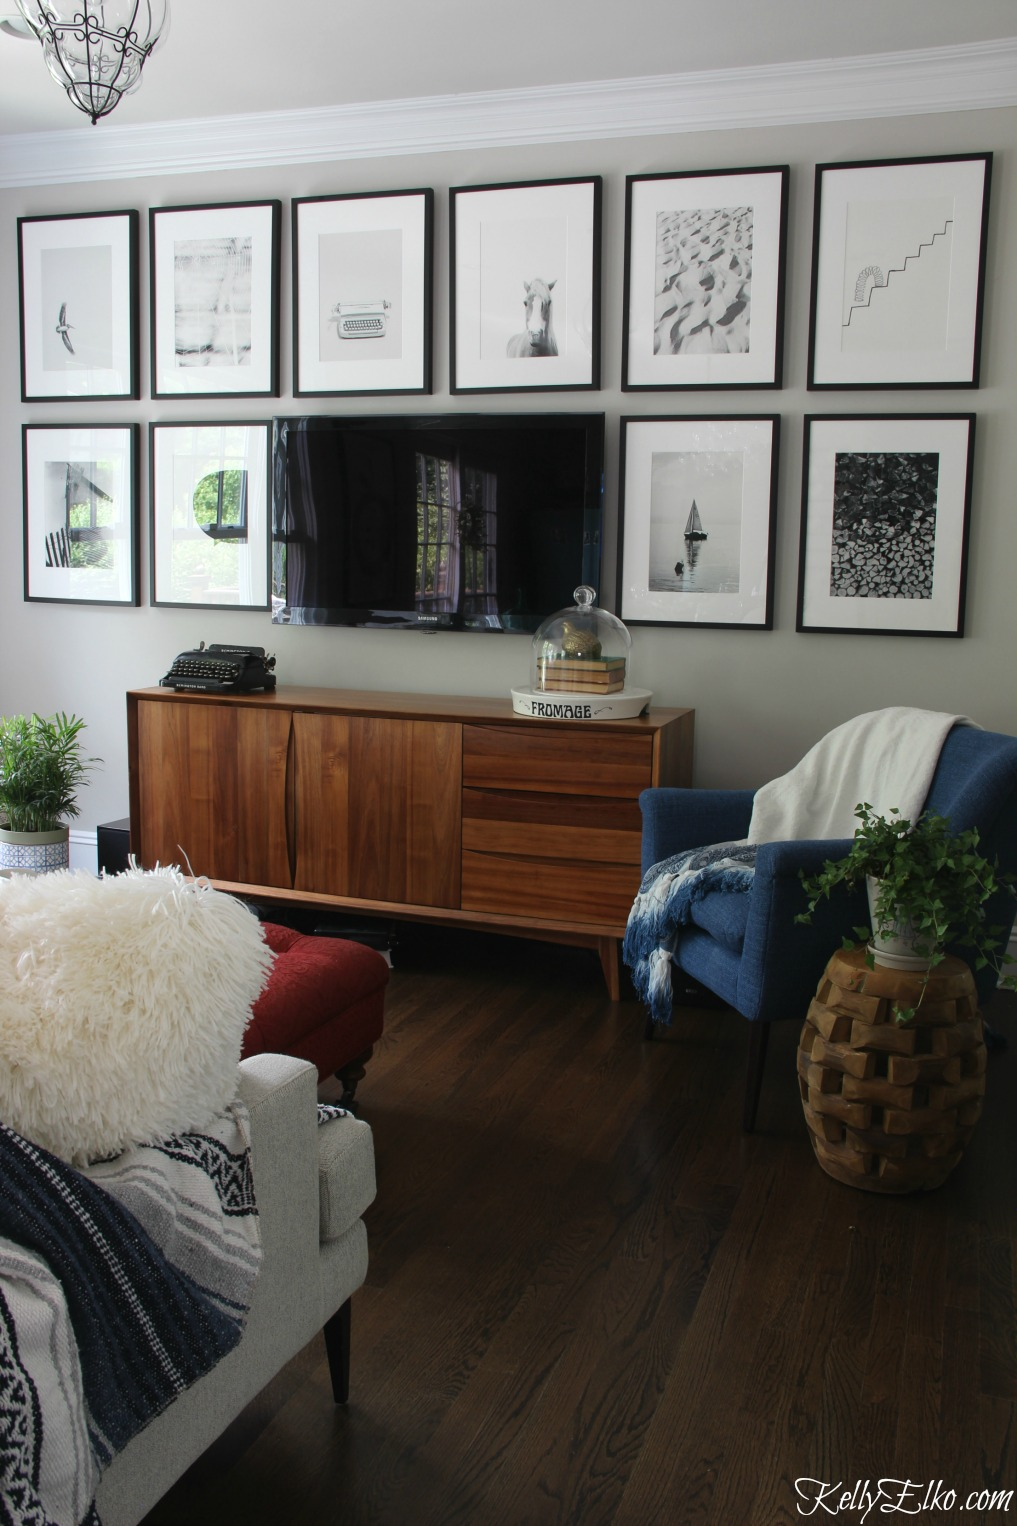 TV Gallery Wall - love the black and white art and mid century furniture kellyelko.com